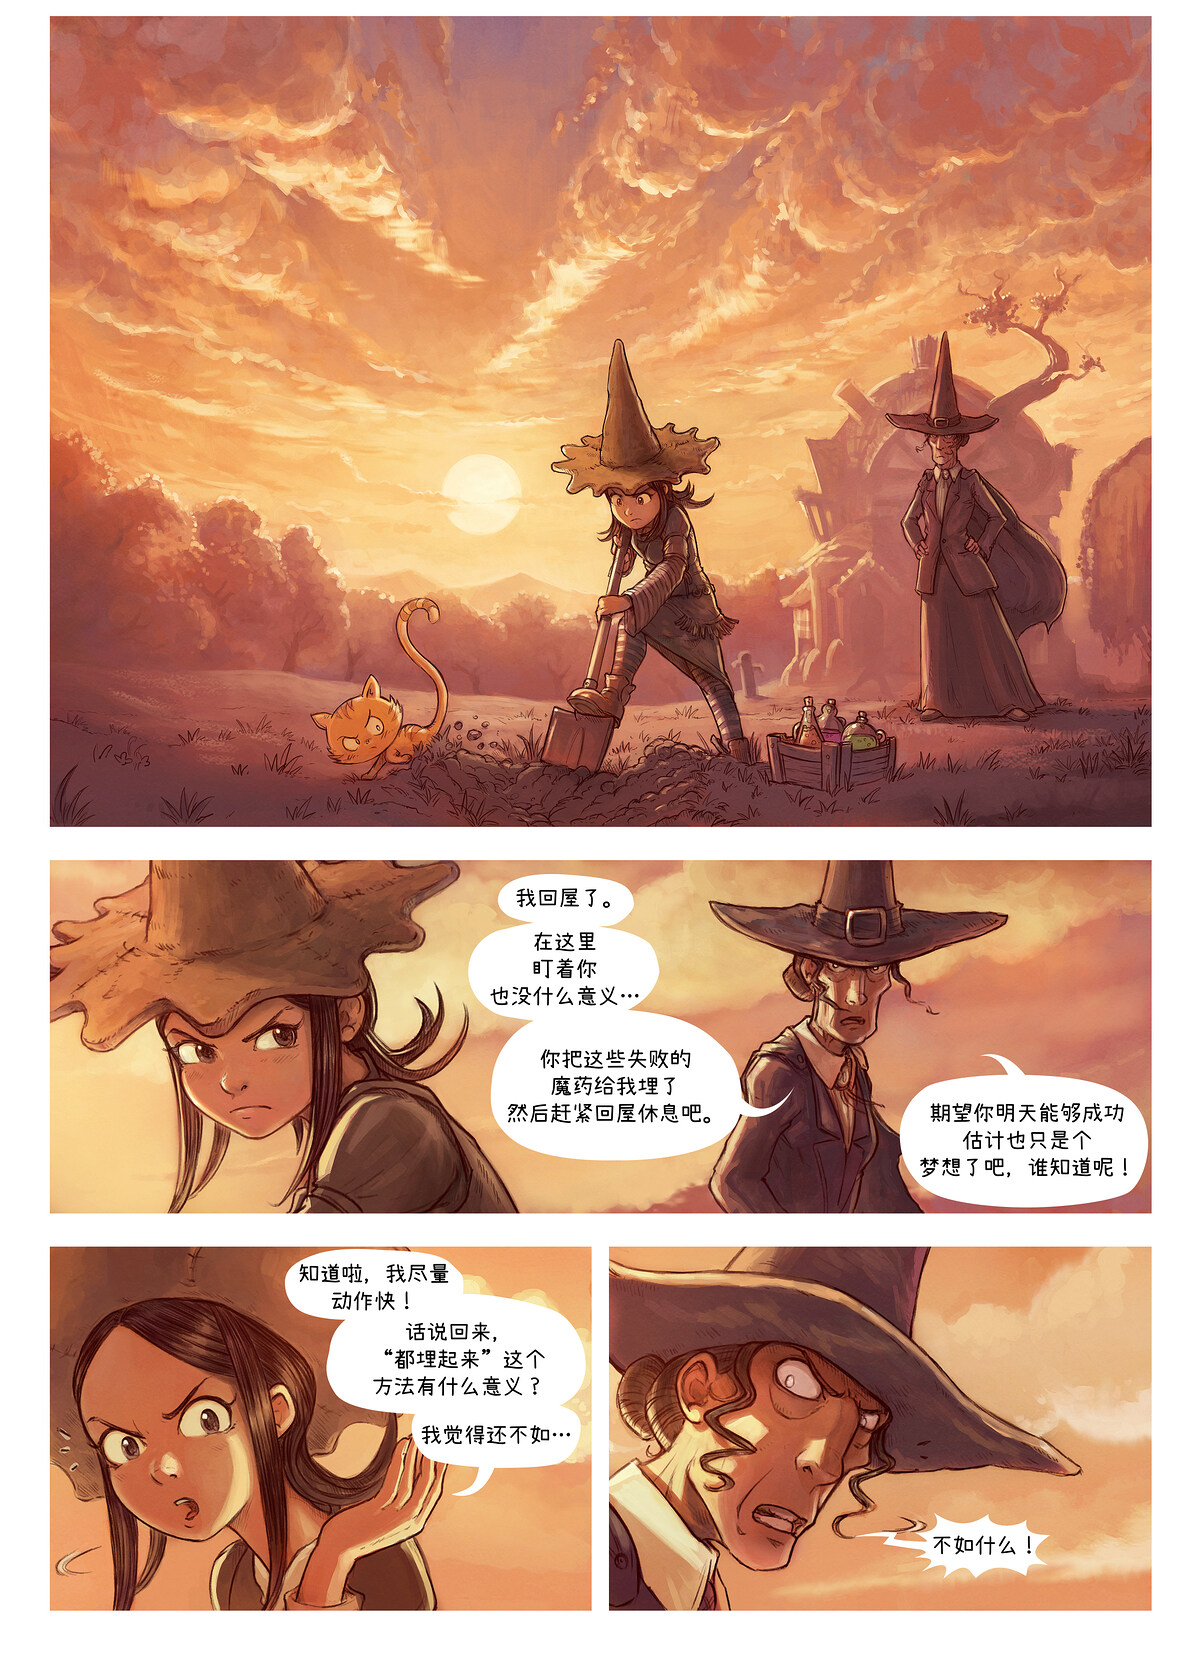 A webcomic page of Pepper&Carrot, 漫画全集 19 [cn], 页面 1